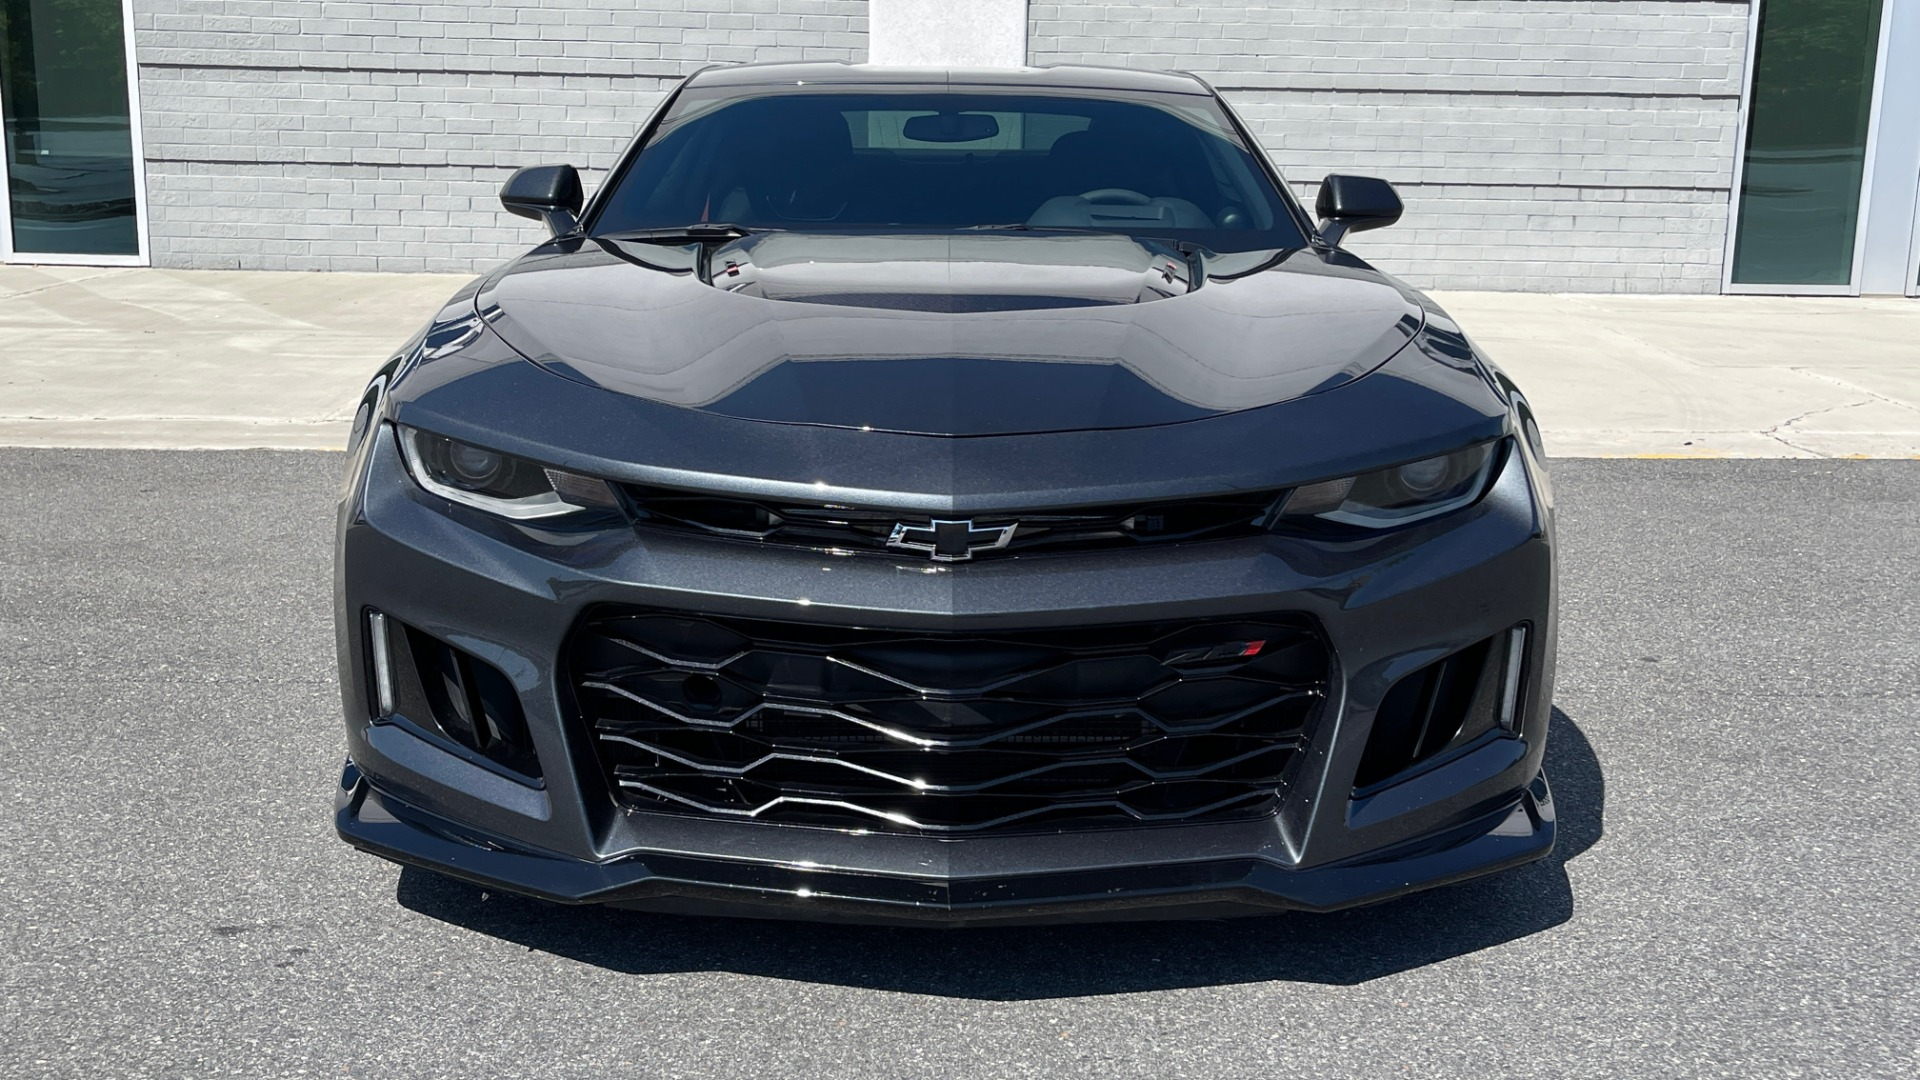 Used 2018 Chevrolet CAMARO ZL1 SUPERCHARGED COUPE 850HP / 10-SPD AUTO / NAV / BOSE / REARVIEW for sale $59,995 at Formula Imports in Charlotte NC 28227 17